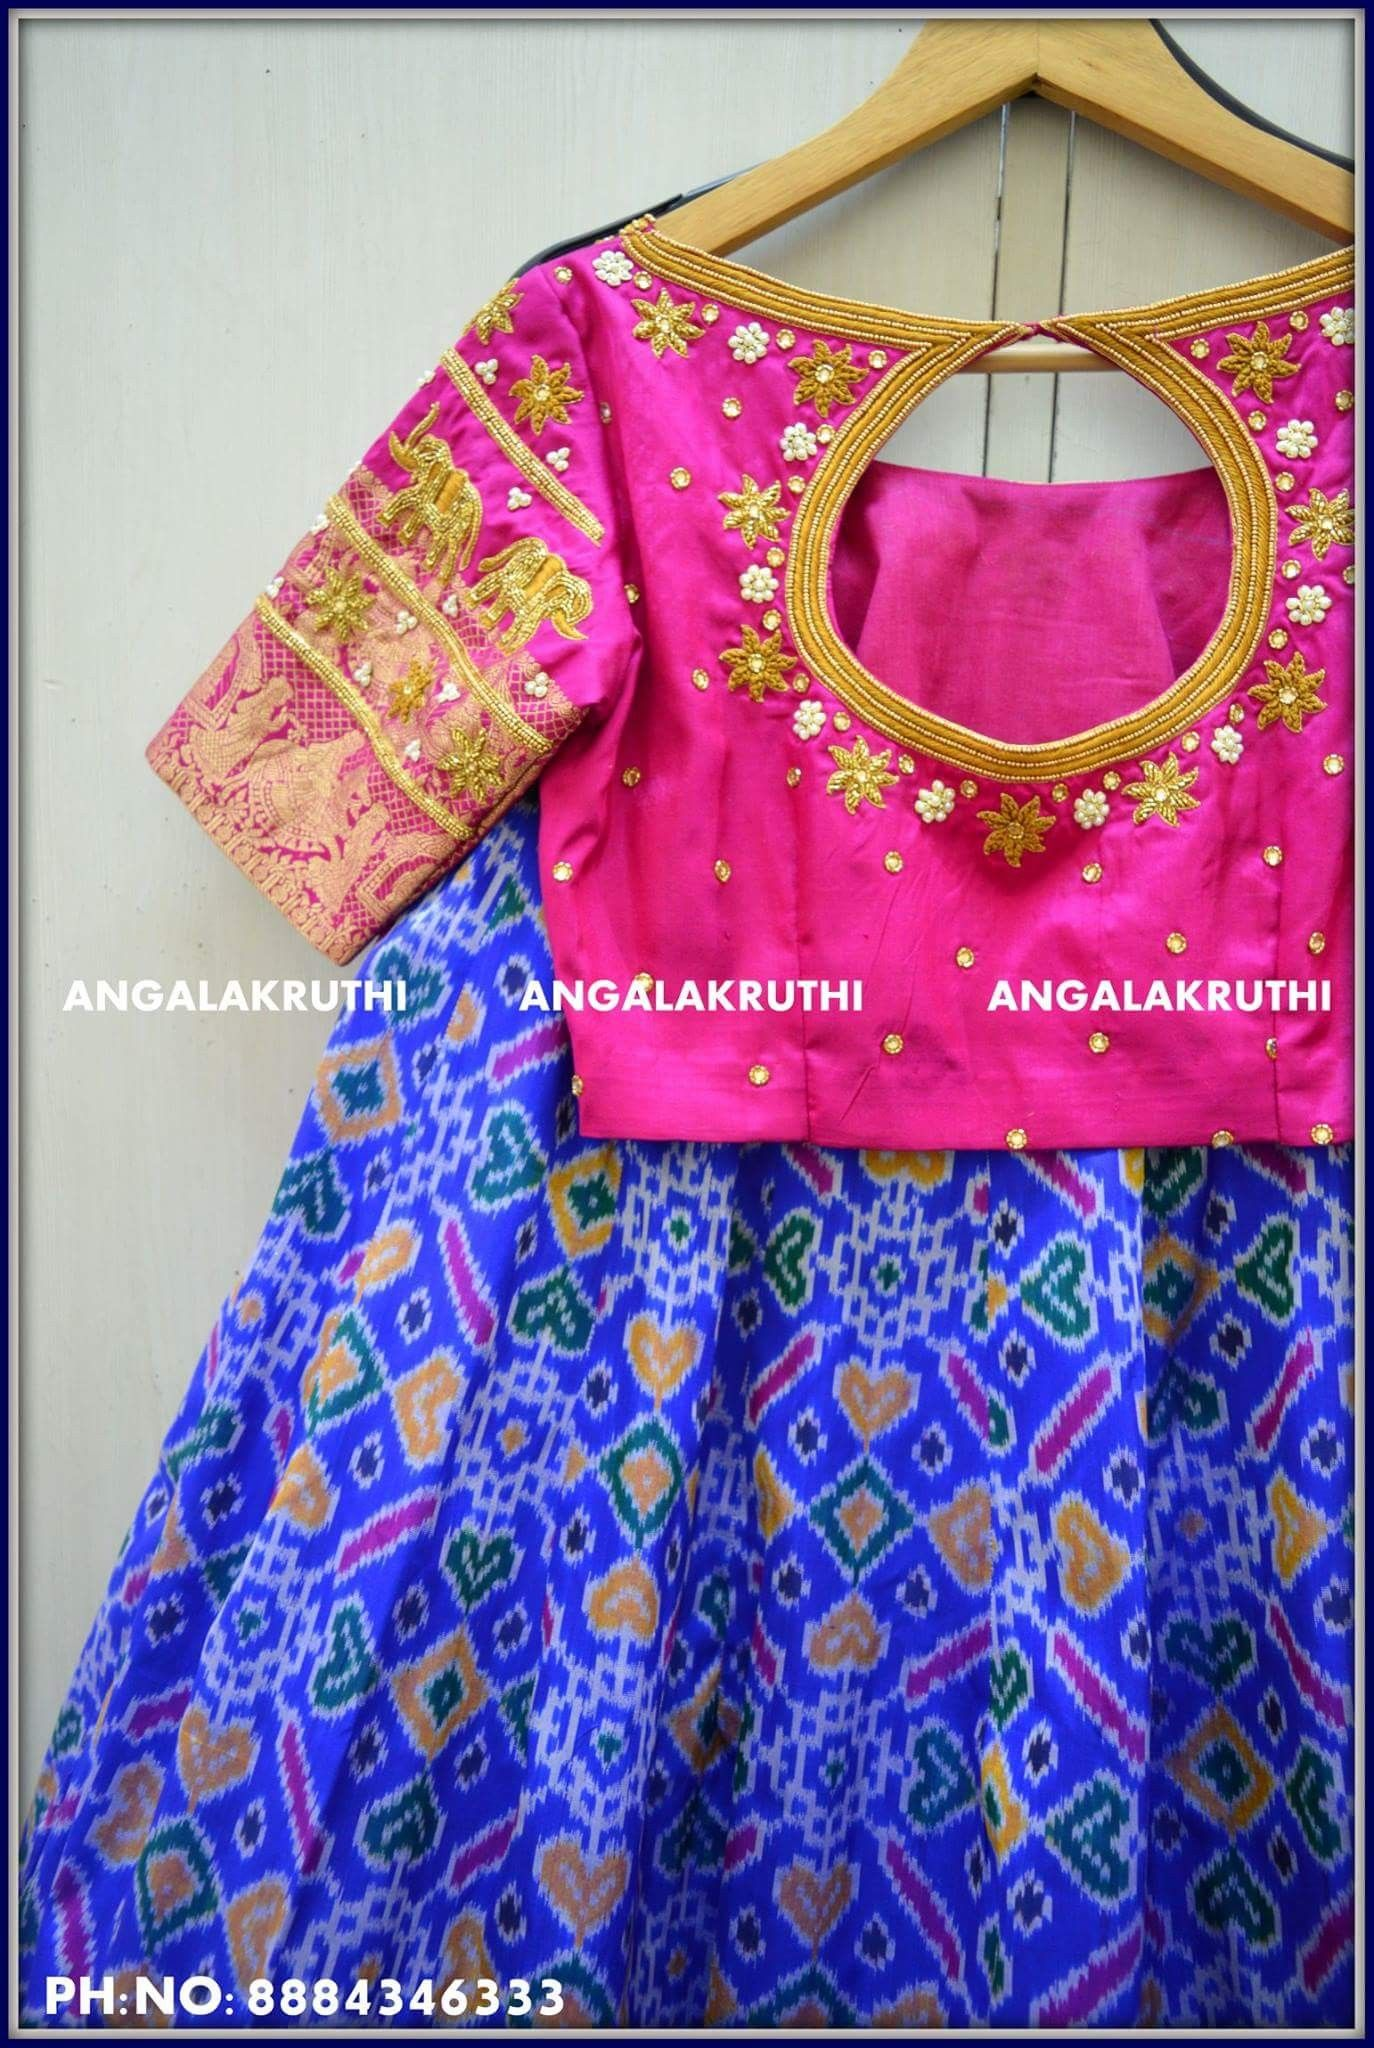 Embroidery blouse designs by angalakruthi boutique bangalore ikkat embroidery blouse designs by angalakruthi boutique bangalore ikkat silk lehenga with rich hand embroidery designs by bankloansurffo Images